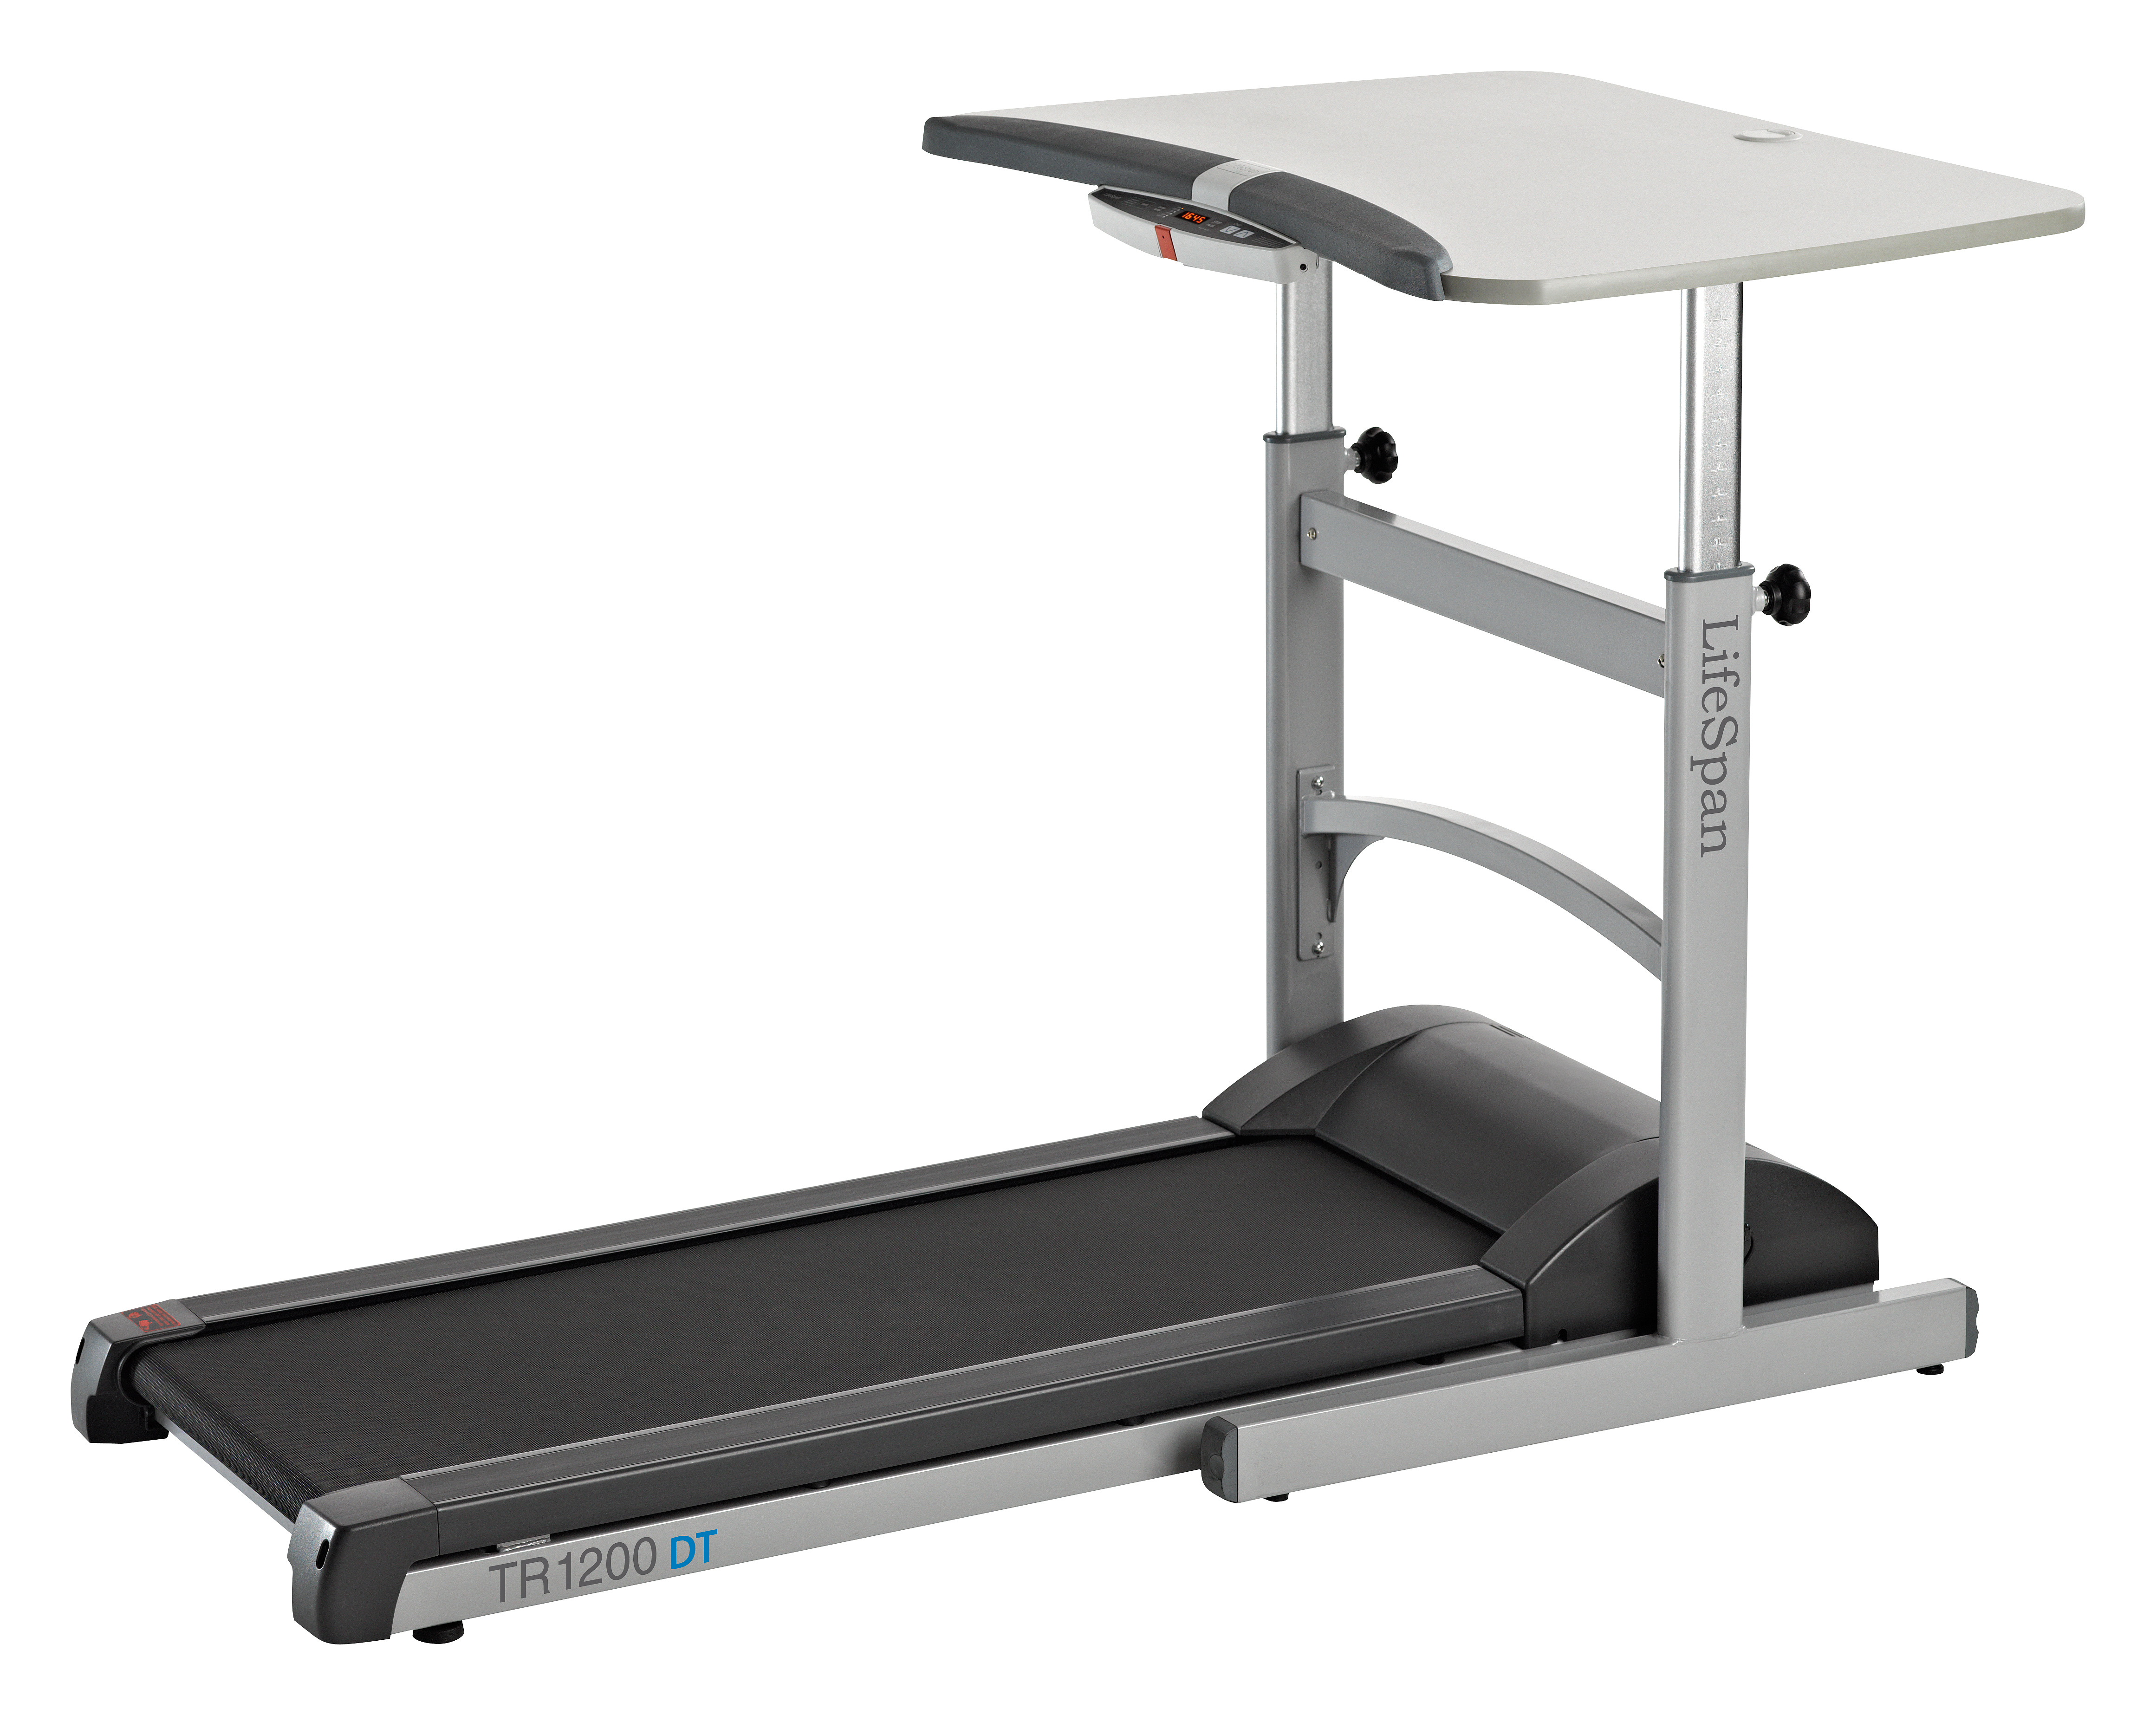 LifeSpan Treadmill And Standing Desk, TR1200-DT5